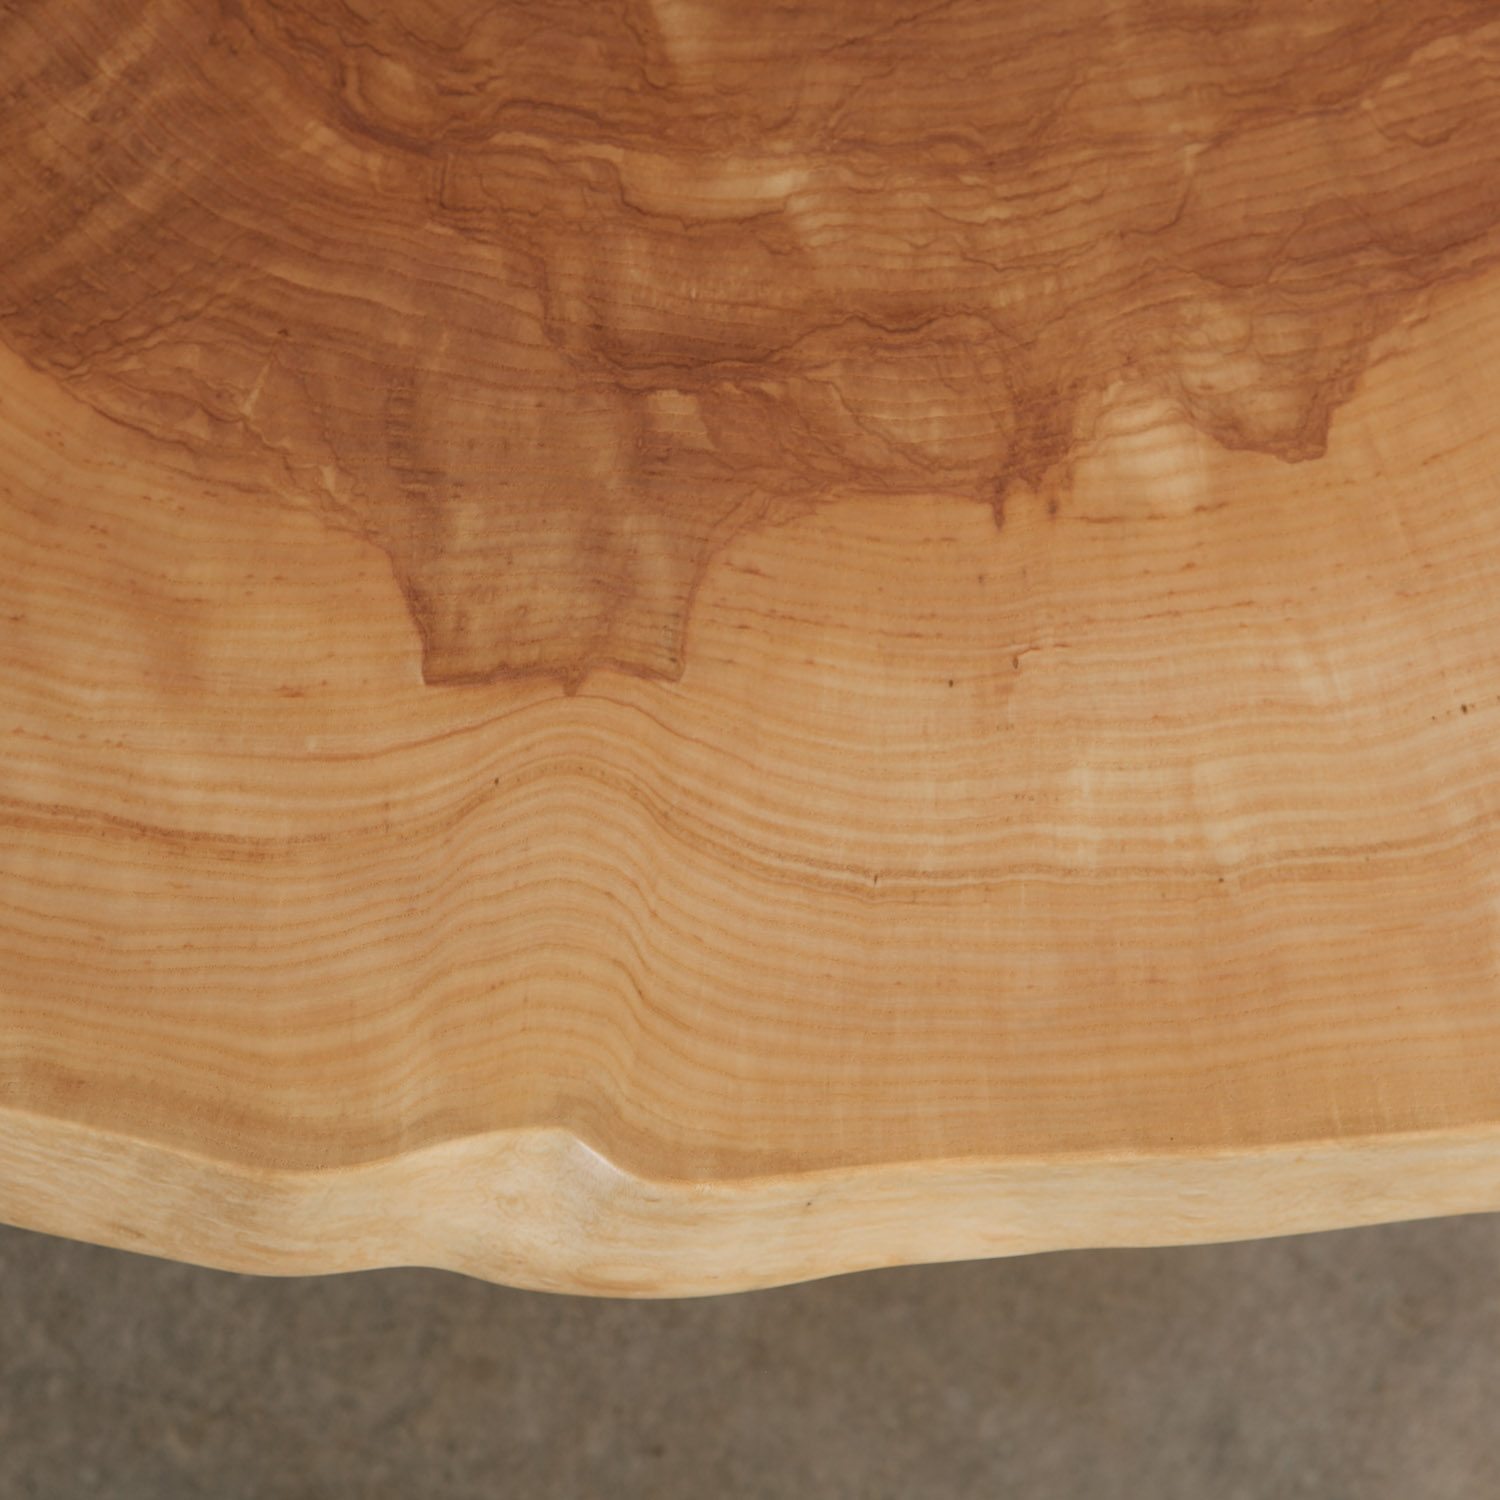 Ash table with matte finish and natural tree rings